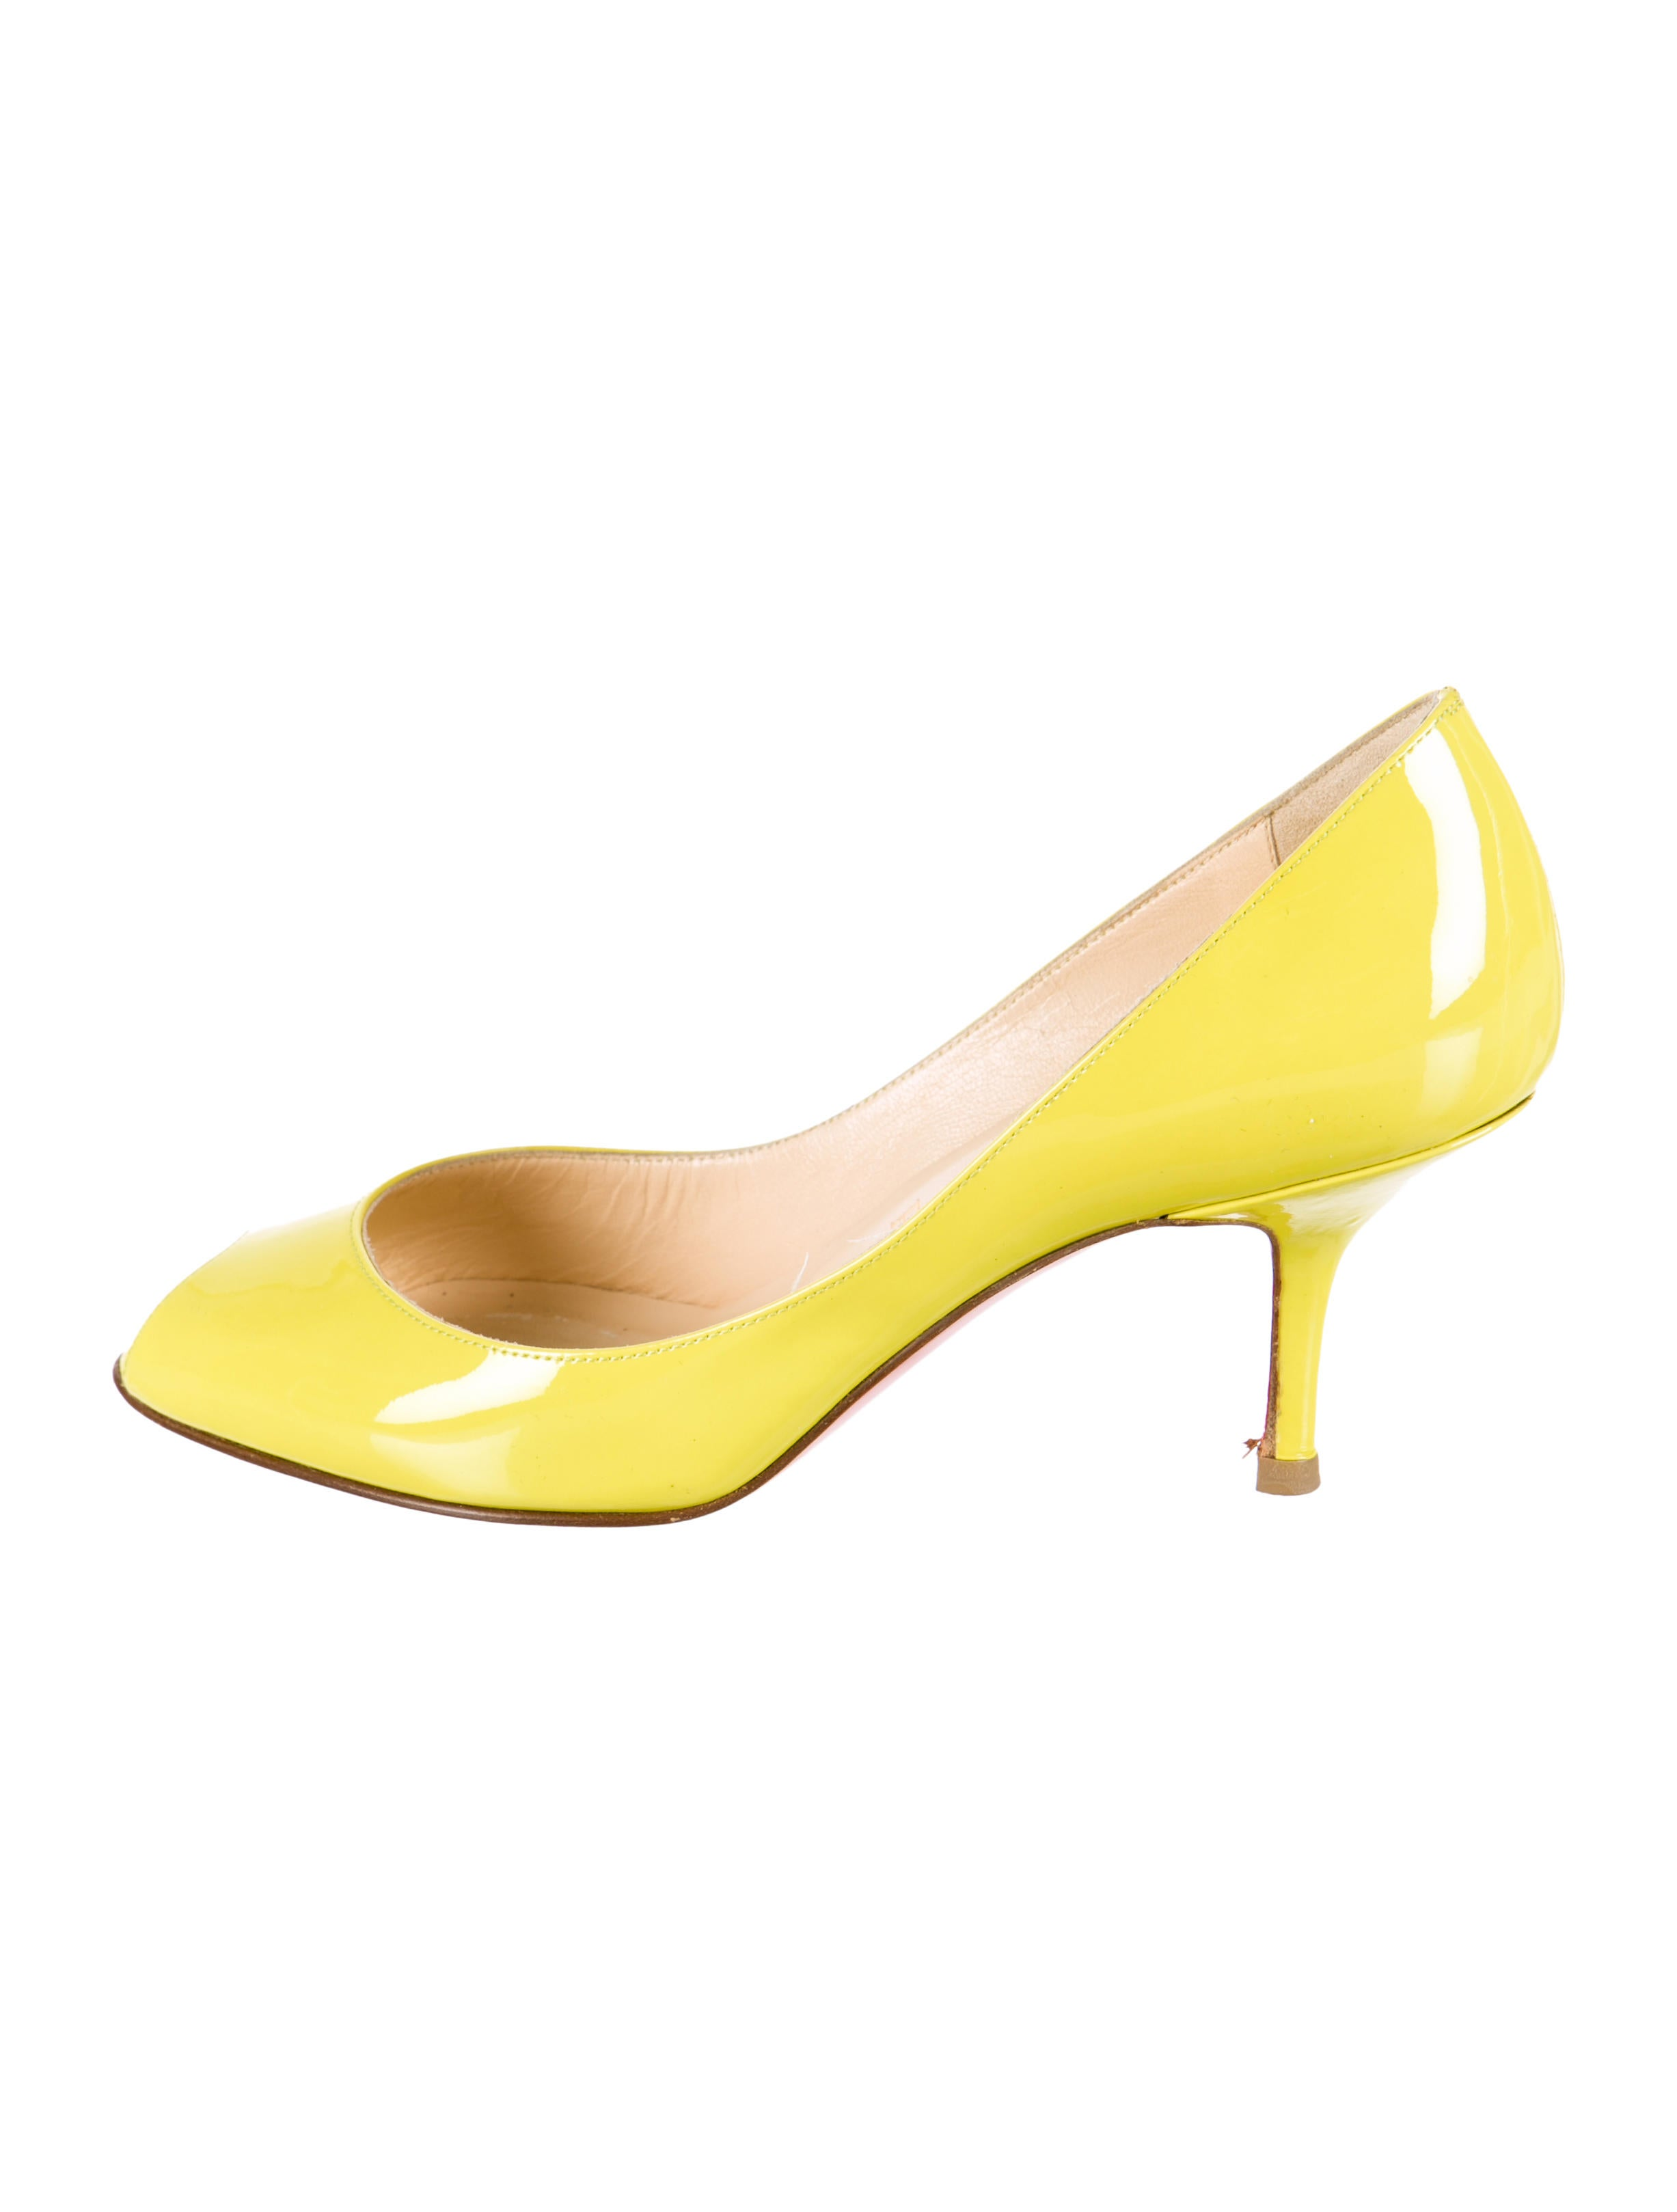 Artesur » christian louboutin patent leather You You pumps Yellow